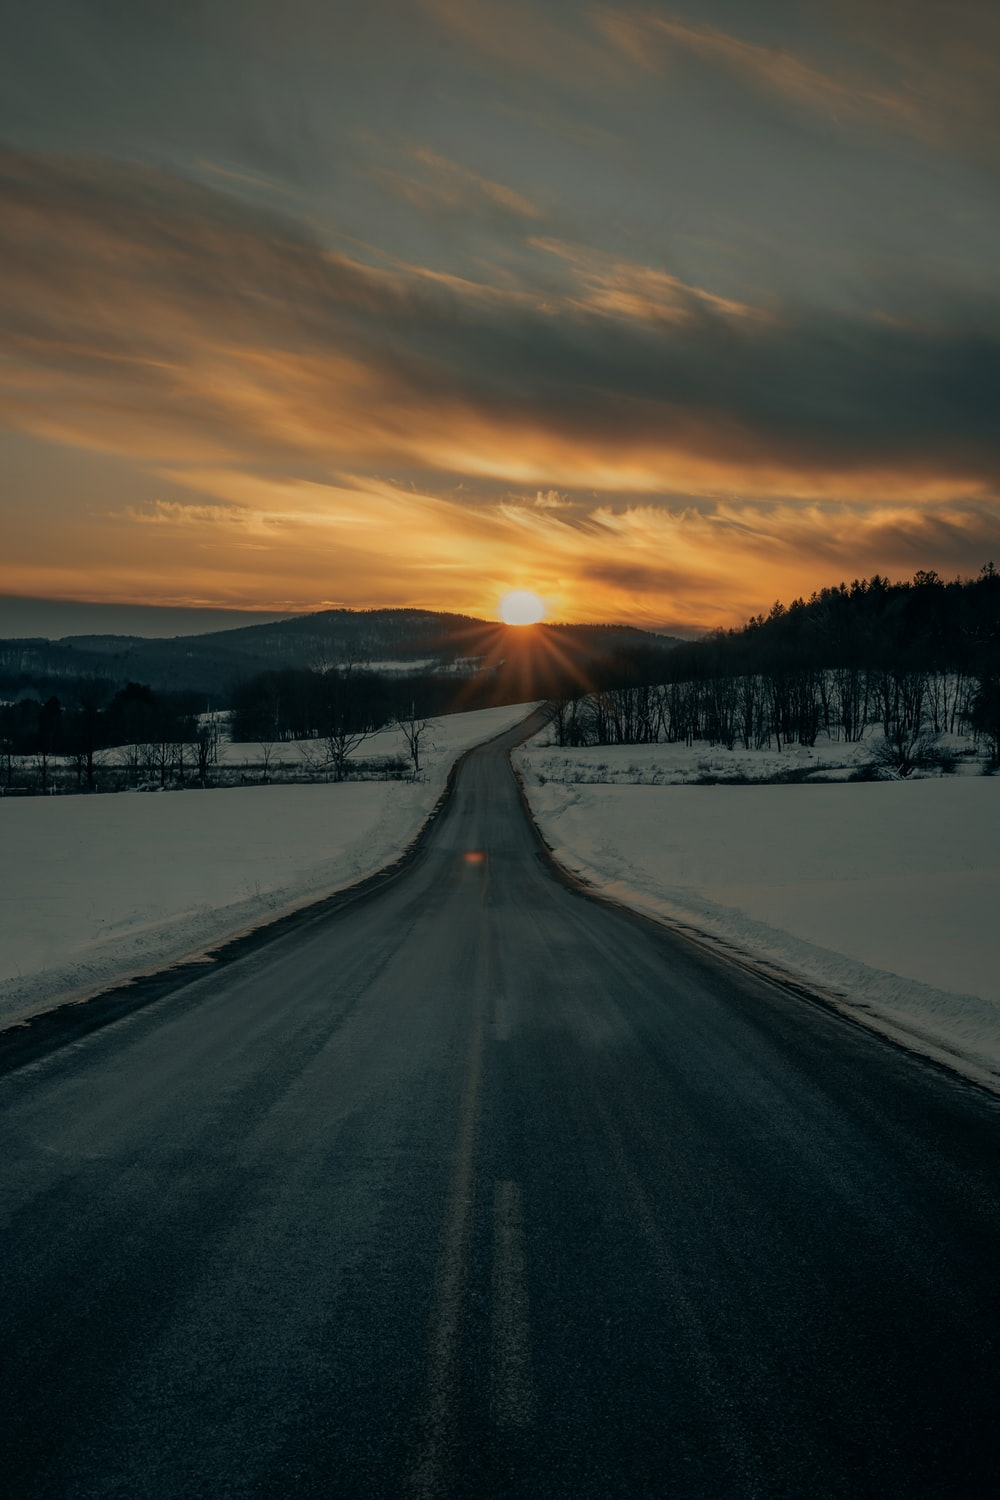 gray concrete road between snow covered ground during sunset